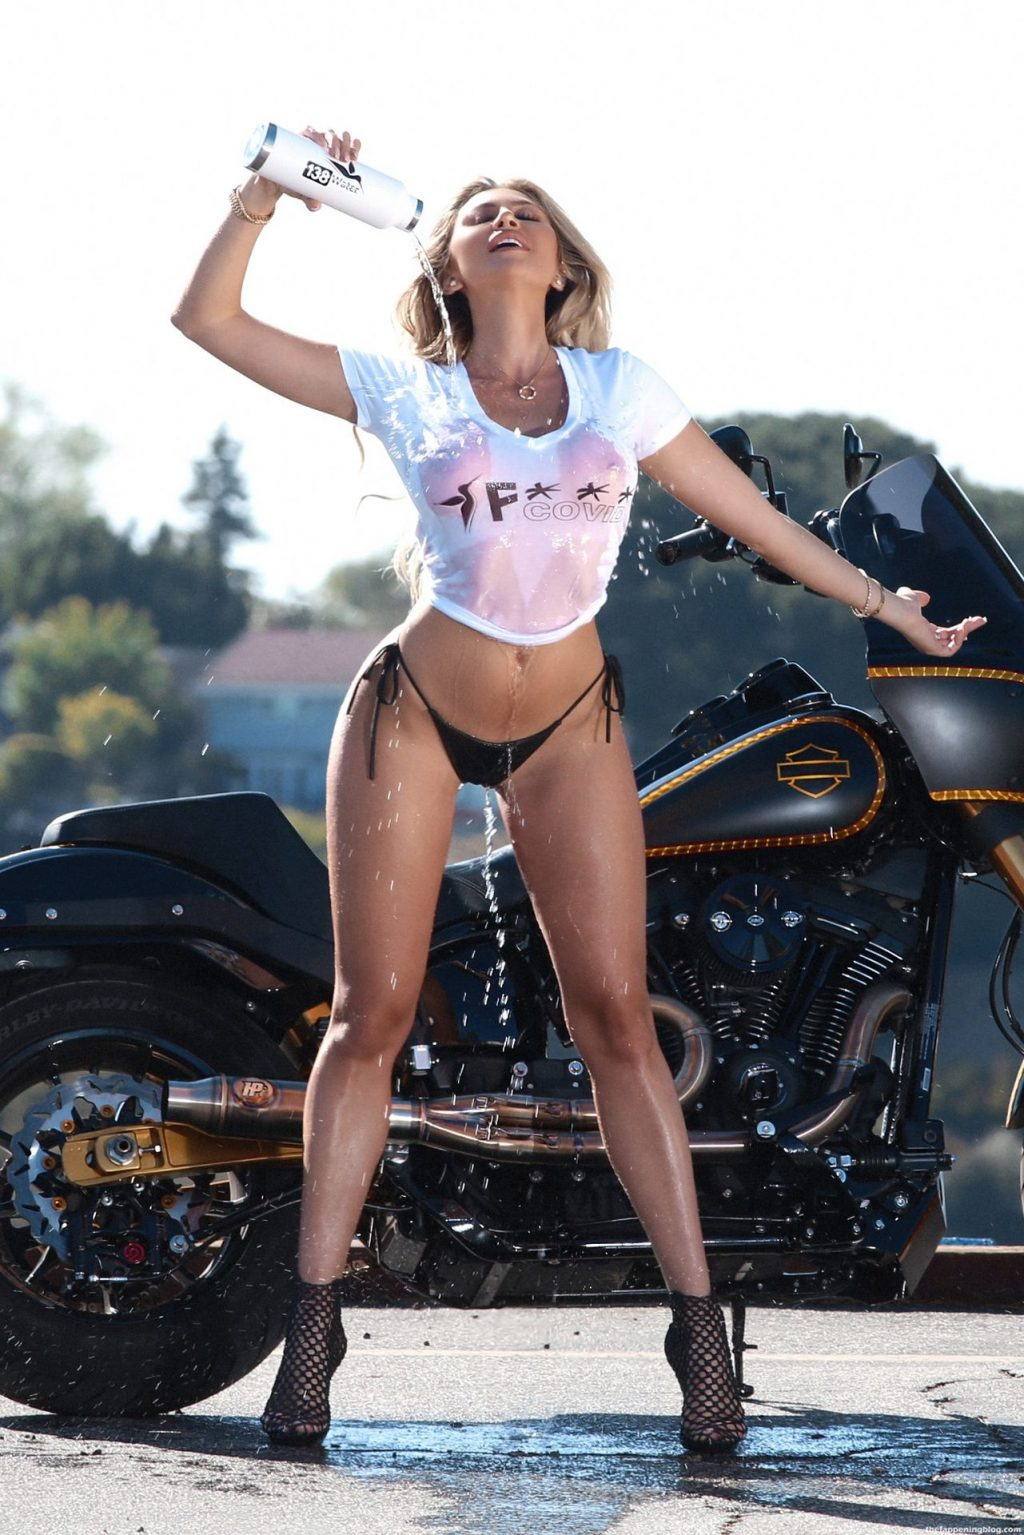 Khloe Terae Gets Her T-shirt Wet While Doing a Risqué Photoshoot for the 138 Water Brand (37 Photos)